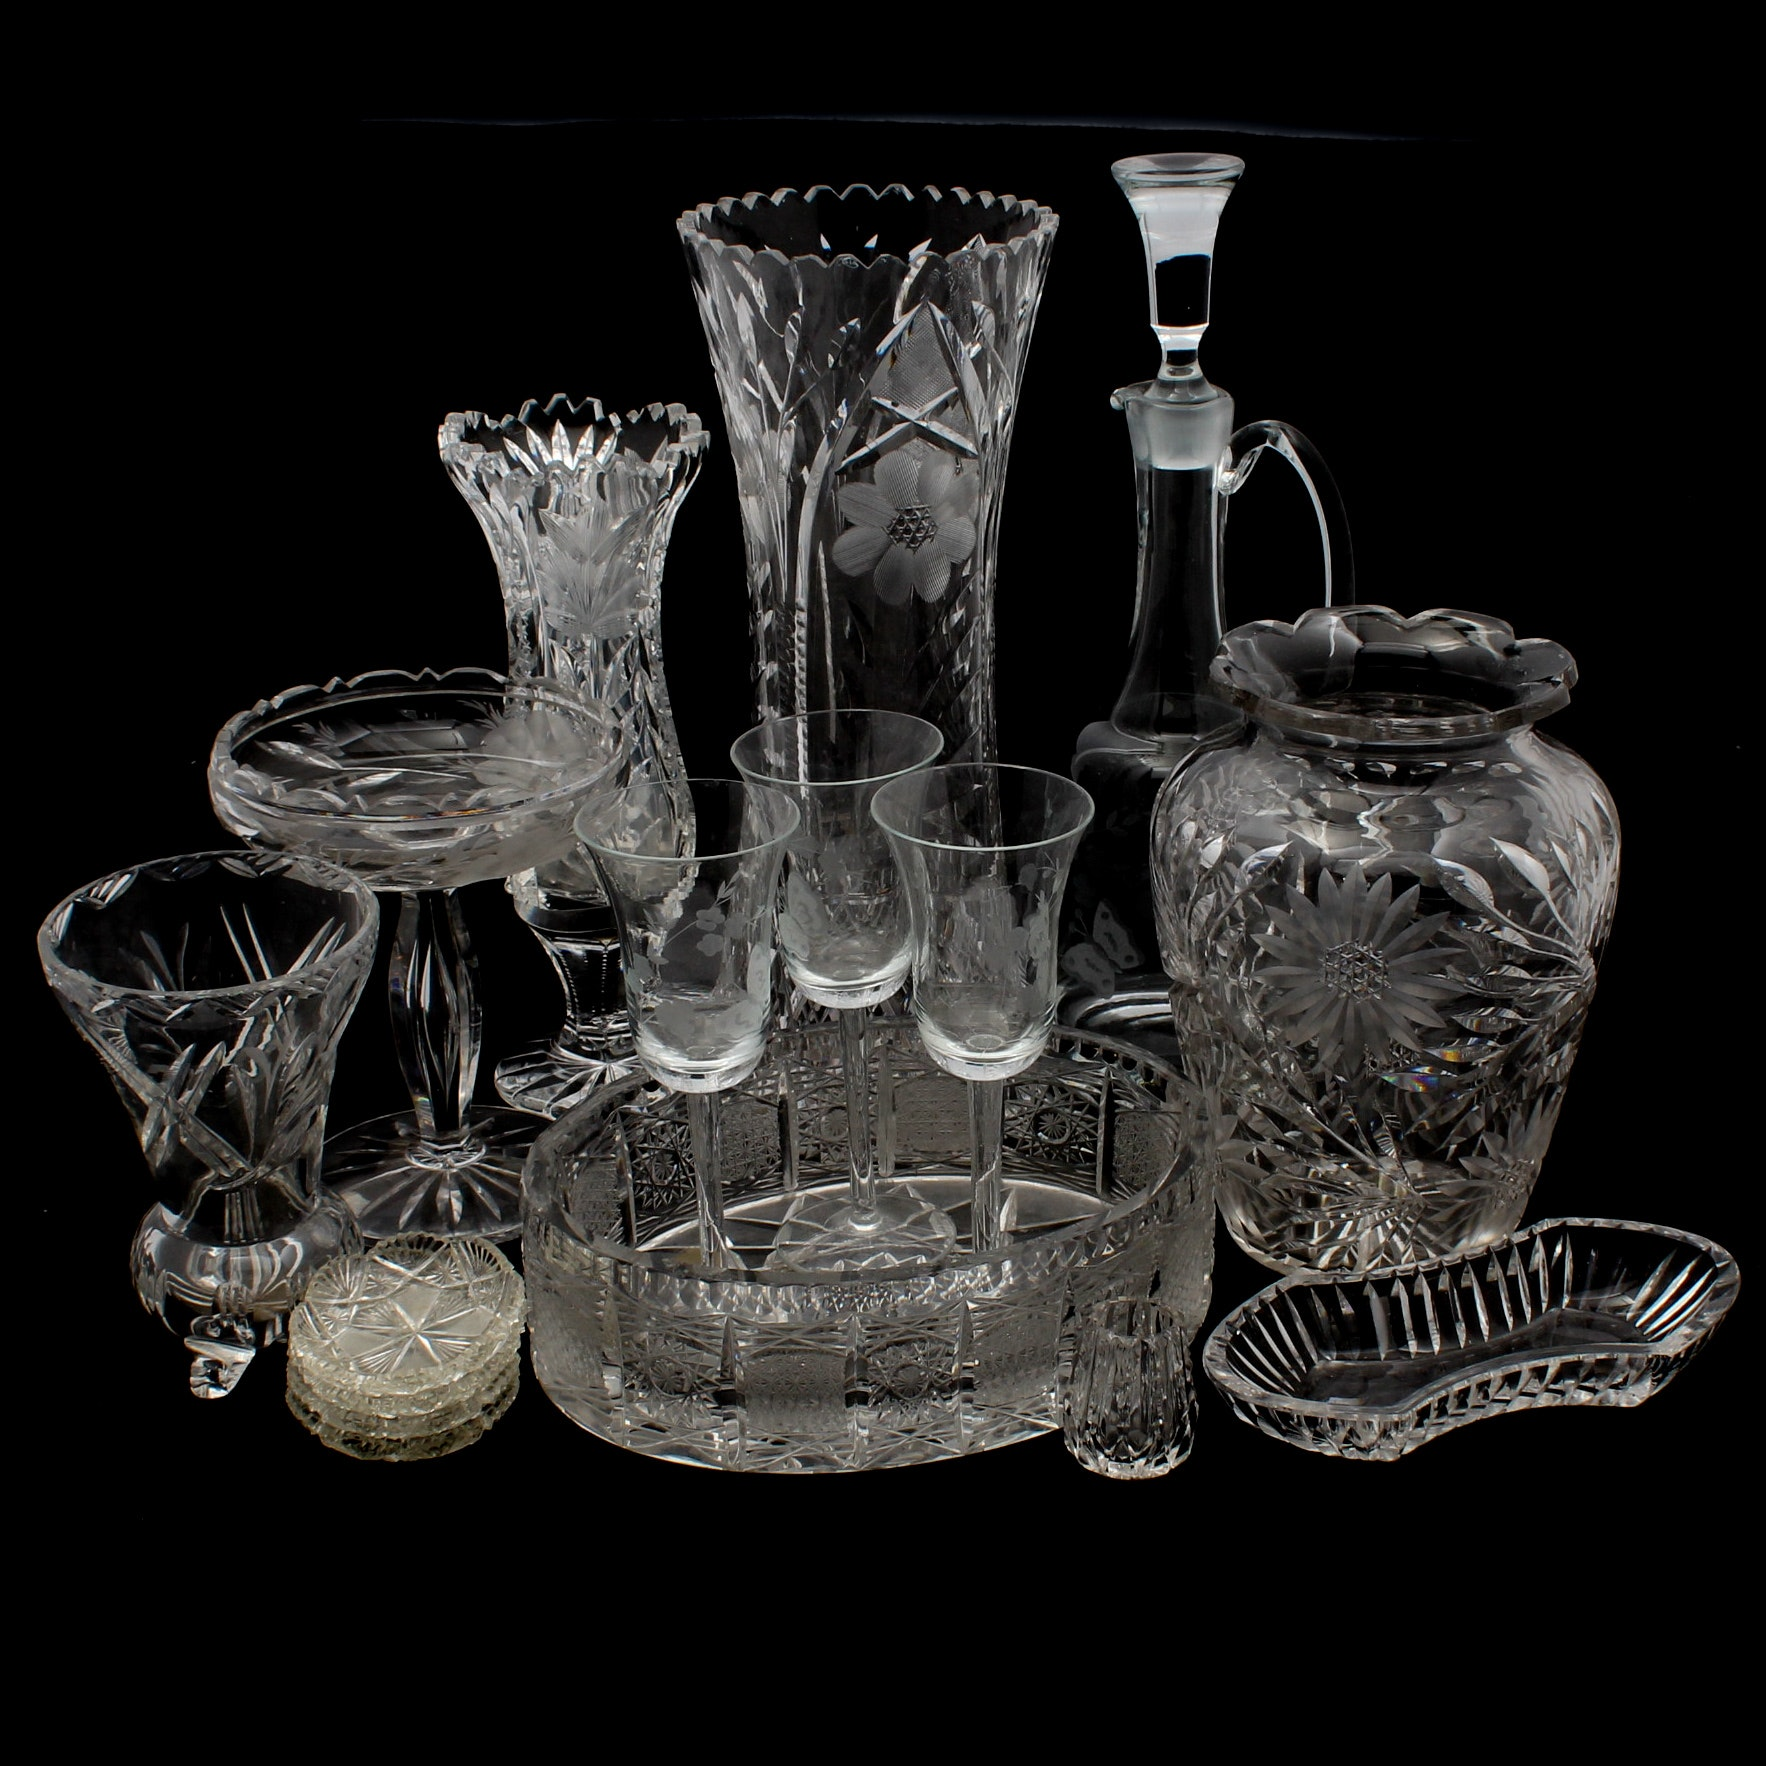 Cut and Etched Glass Vases, Decanter, Stemware and Bowls Featuring Hawkes